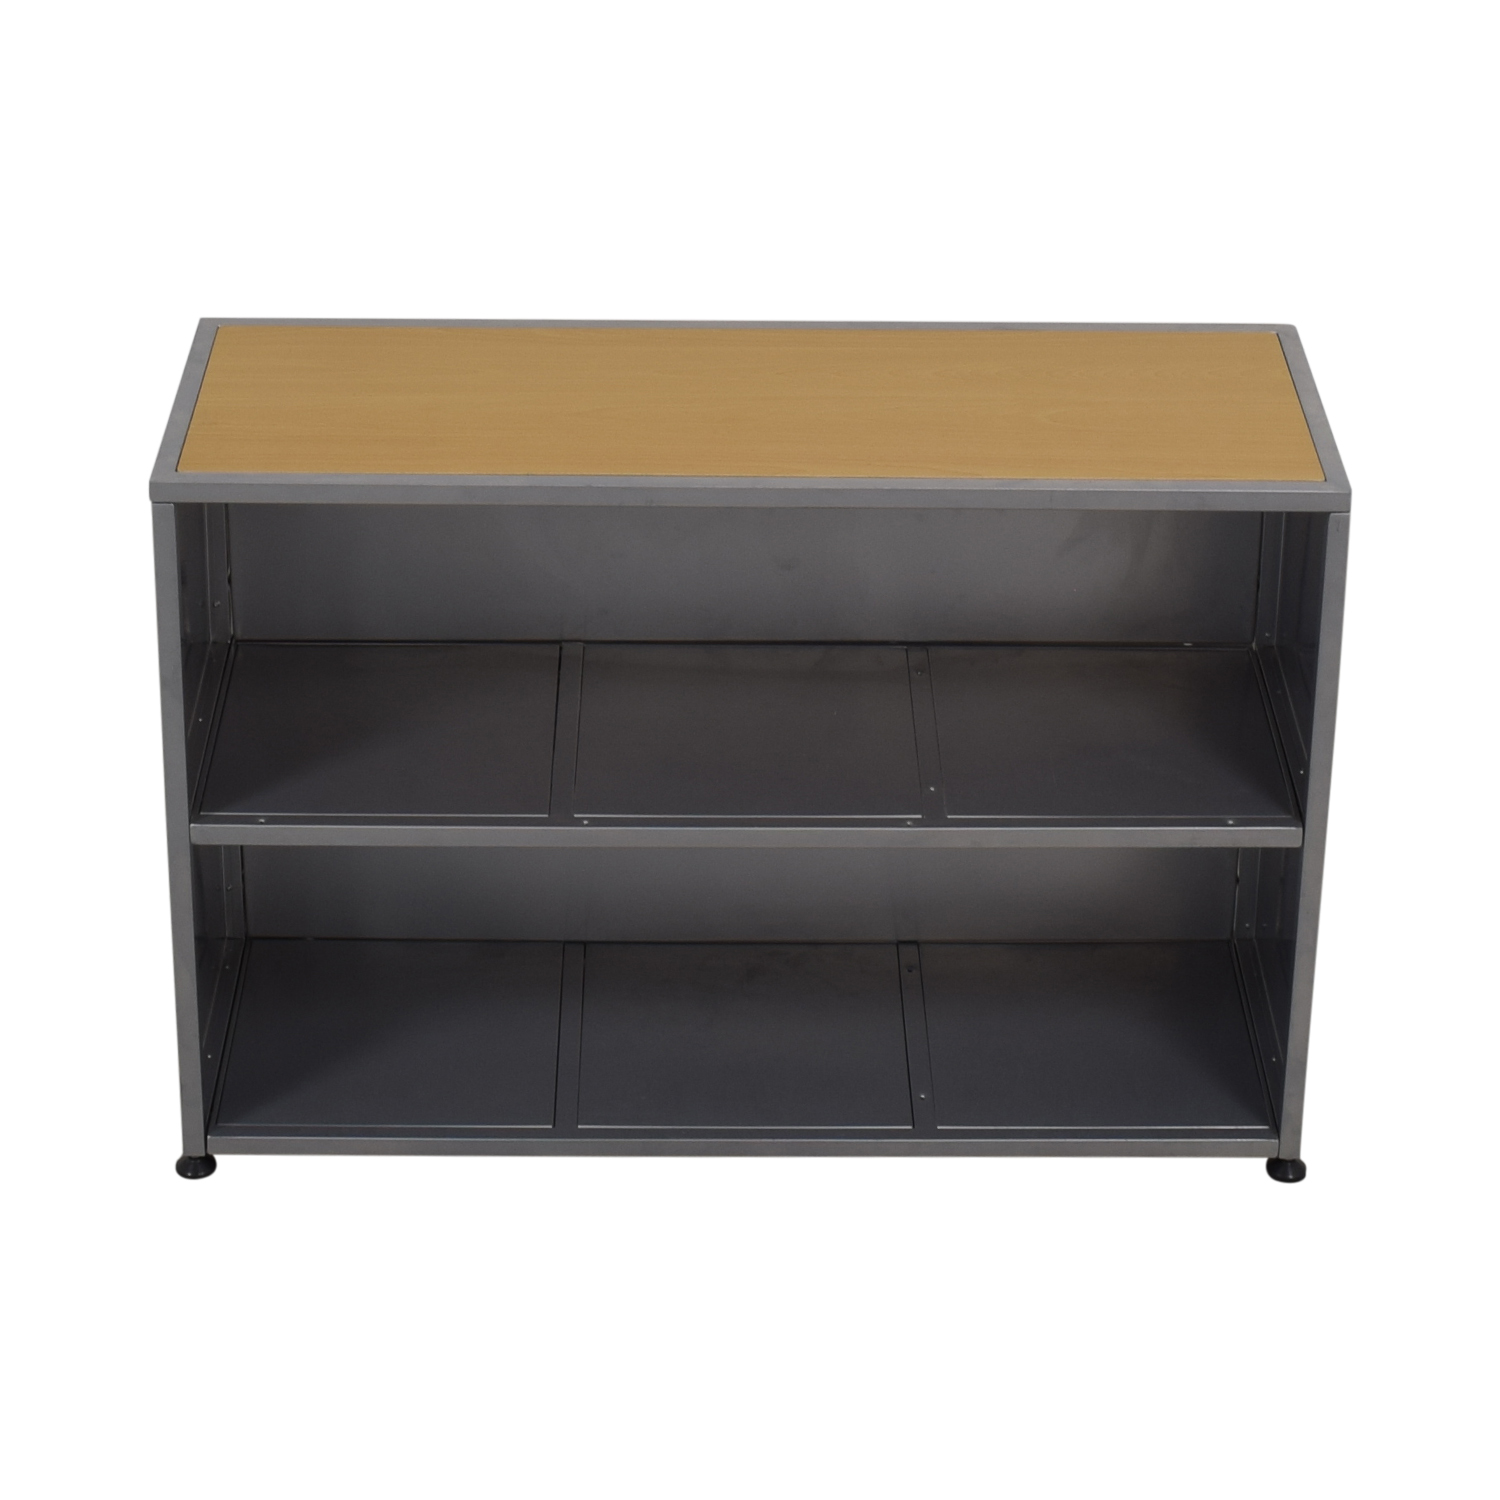 Industrial Grey Metal and Wood Bookshelf coupon